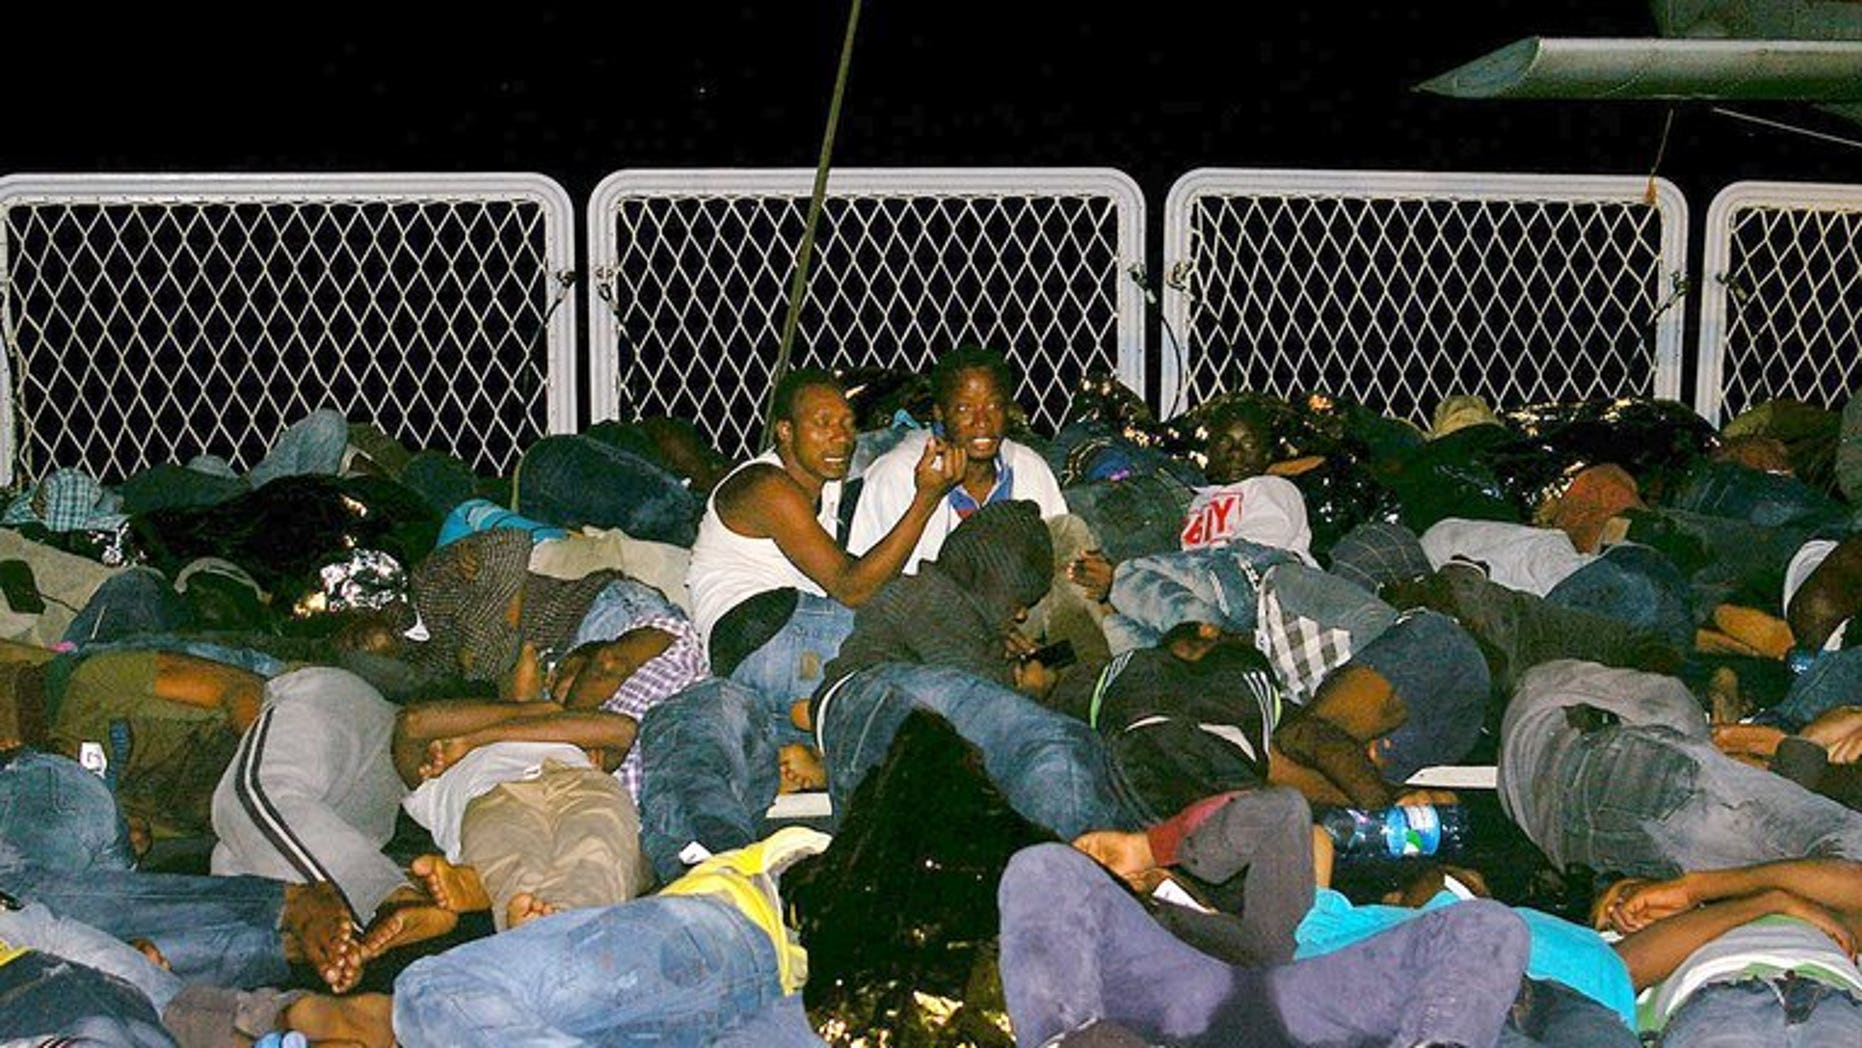 Mainly Syrian refugees rest aboard a boat after being rescued overnight by the Italian Navy near the Italian port of Pozzallo, south of Sicily on September 16, 2013.